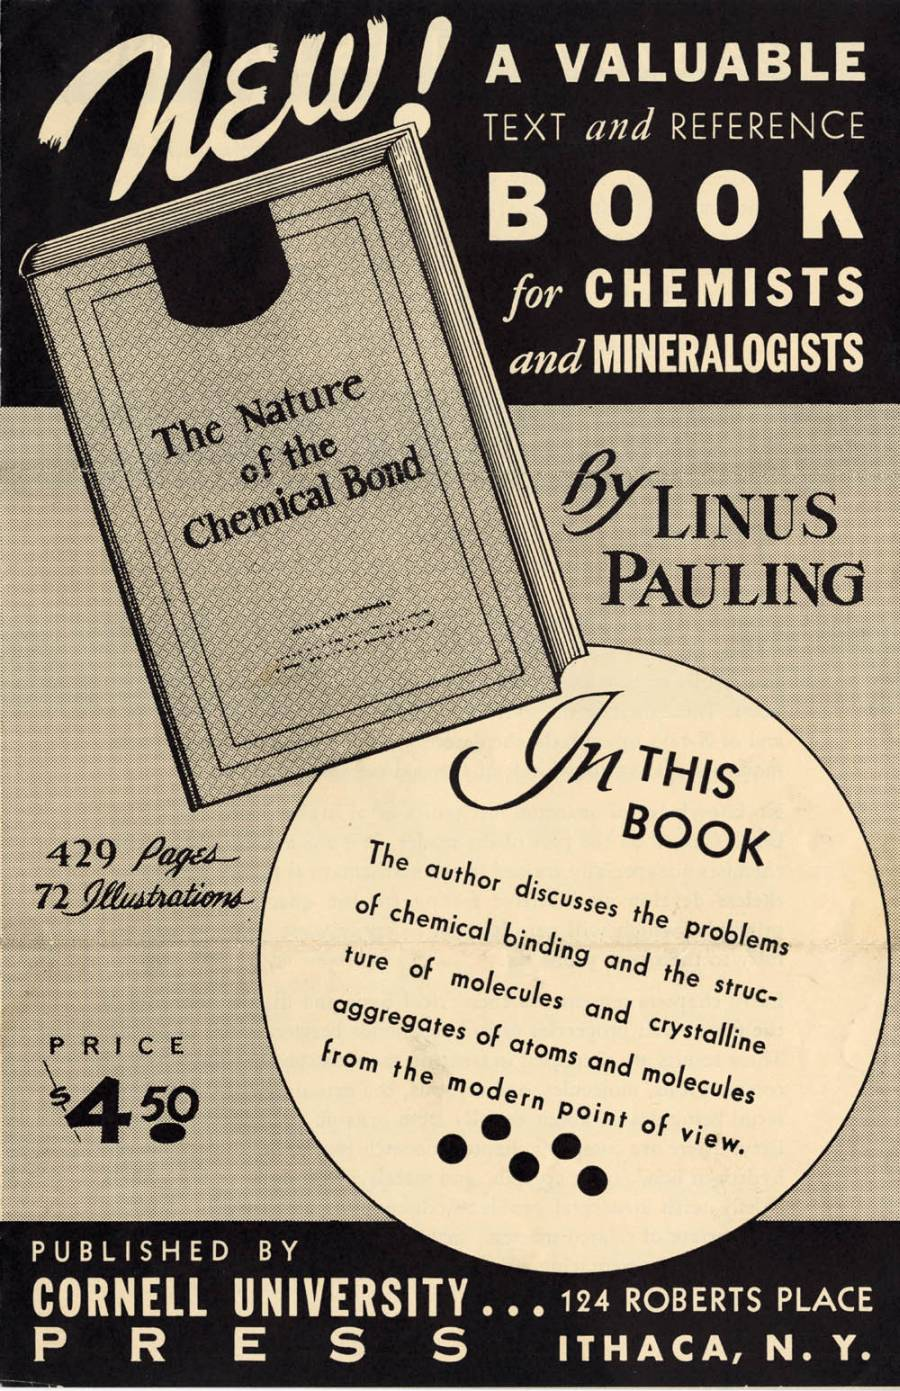 Advertisement for The Nature of the Chemical Bond.